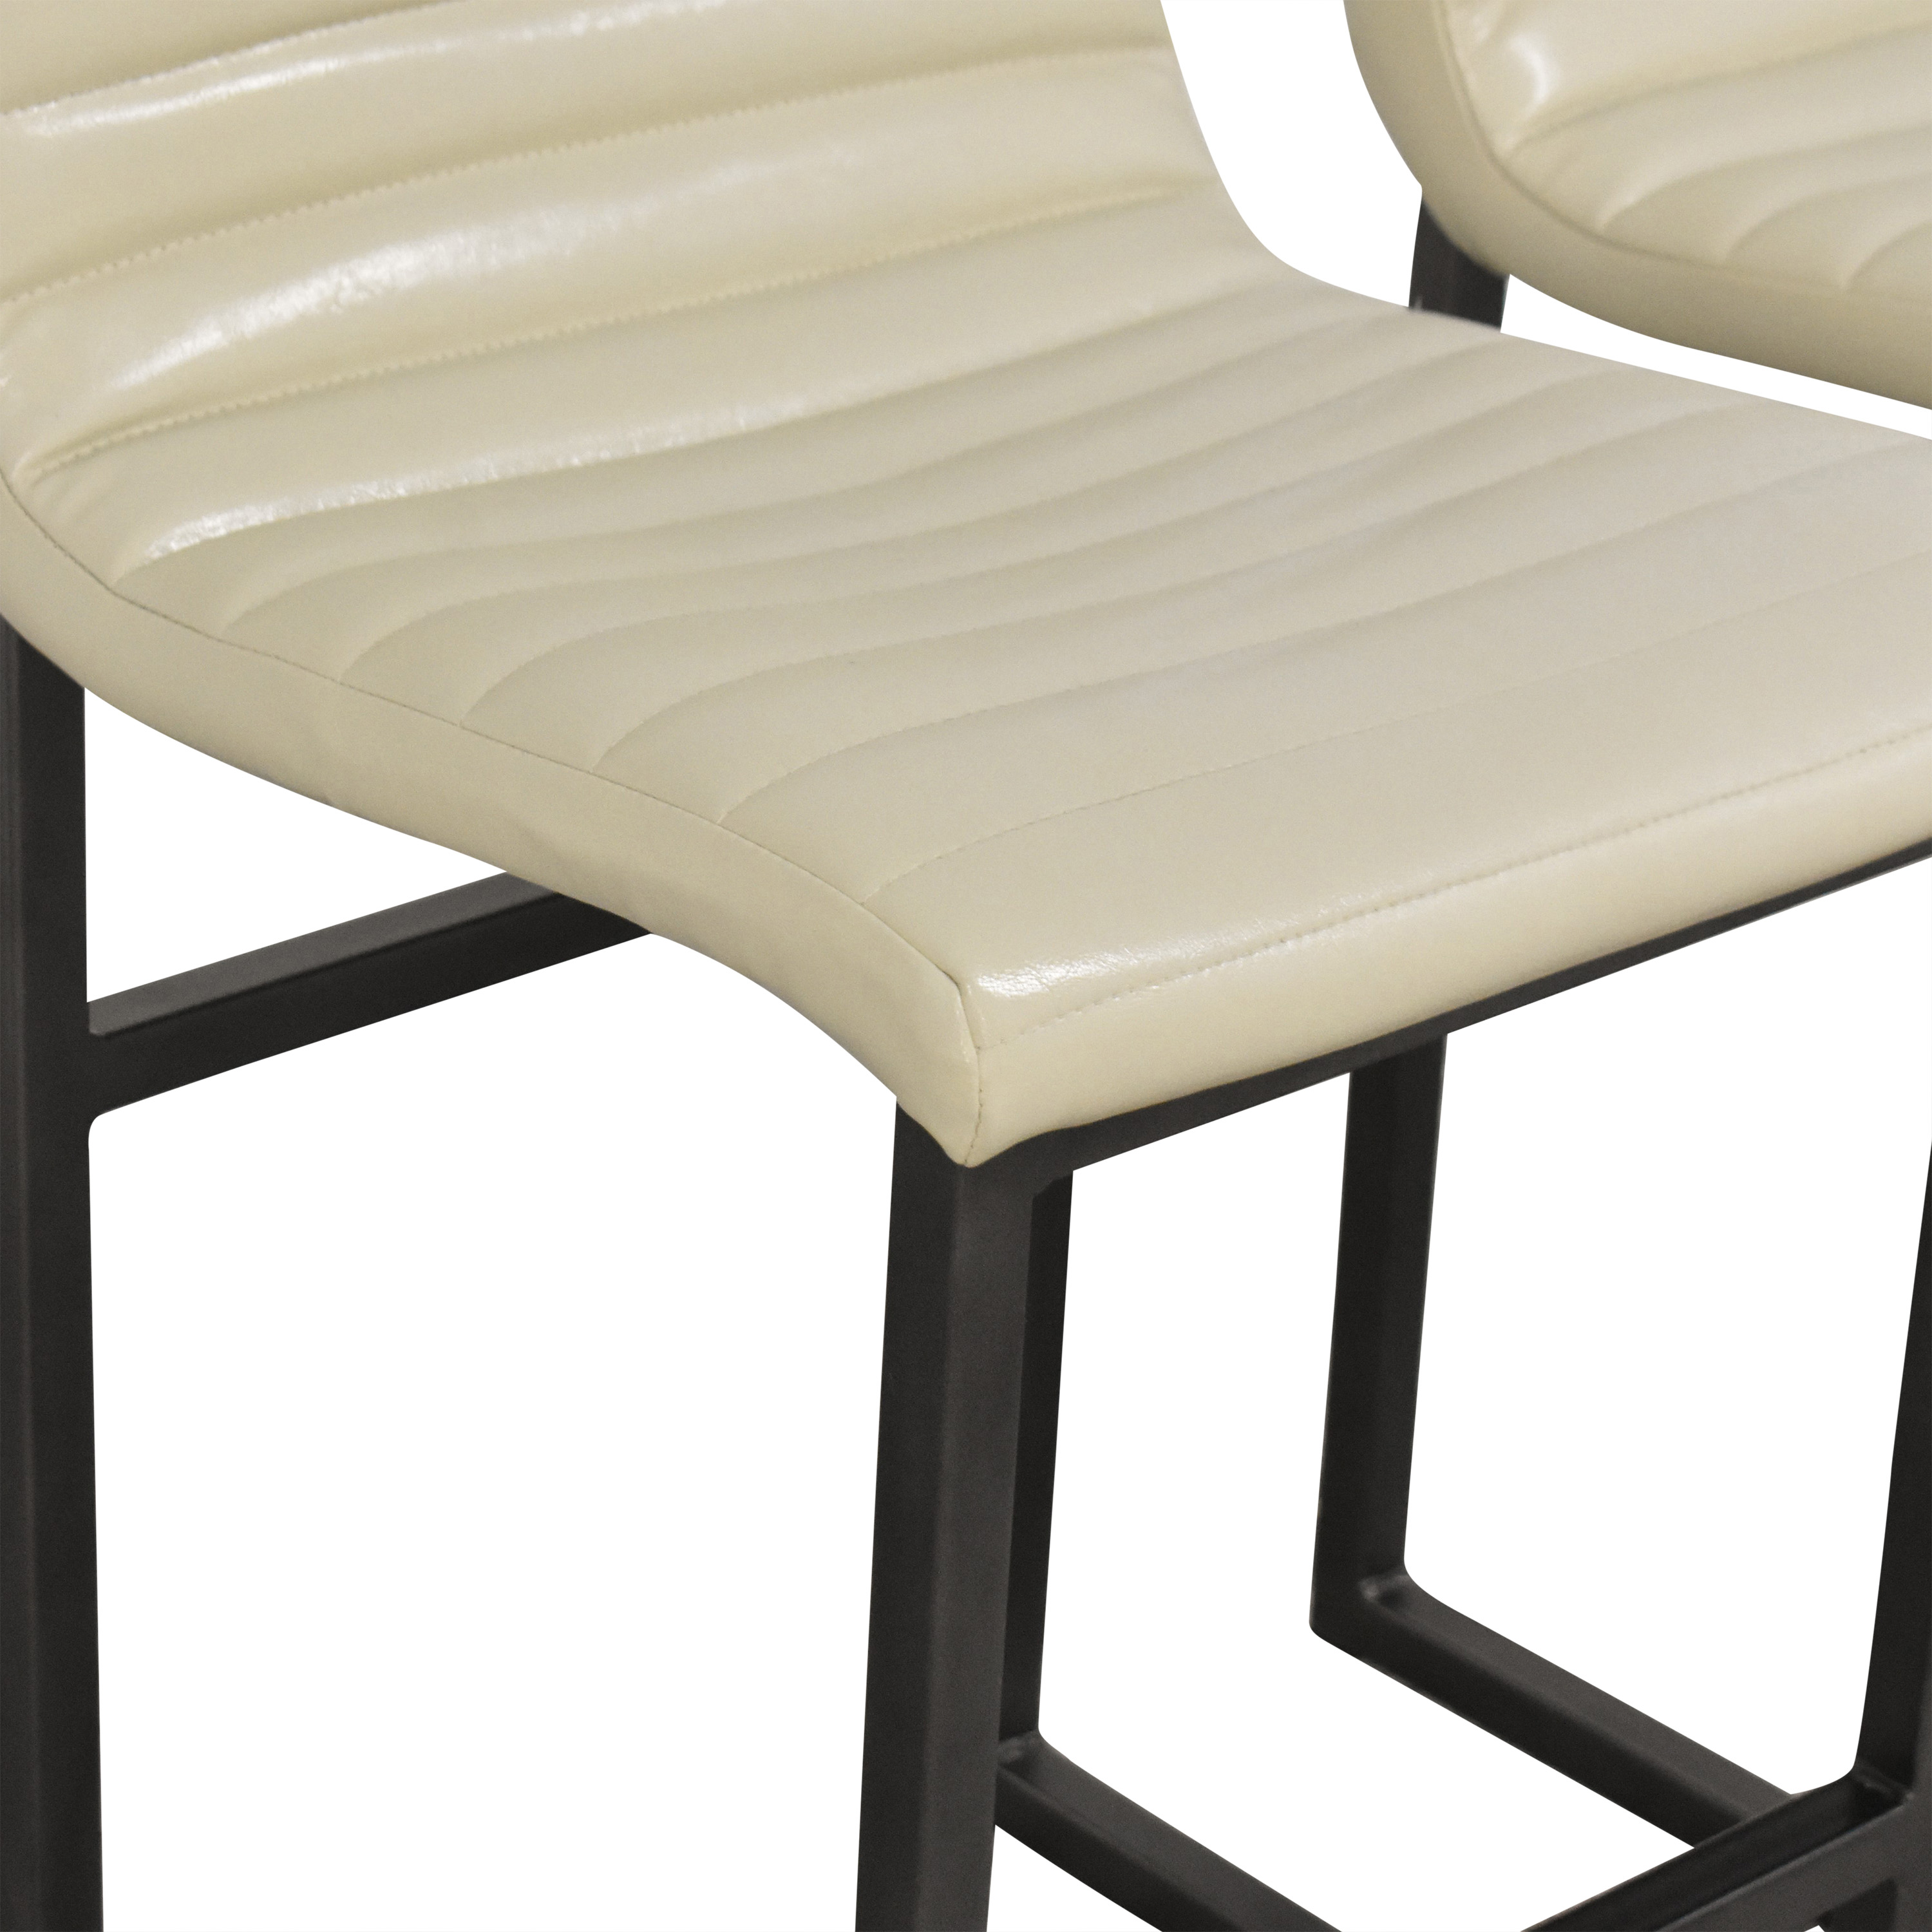 Dimensions Dimensions Furniture Counter Stools ct